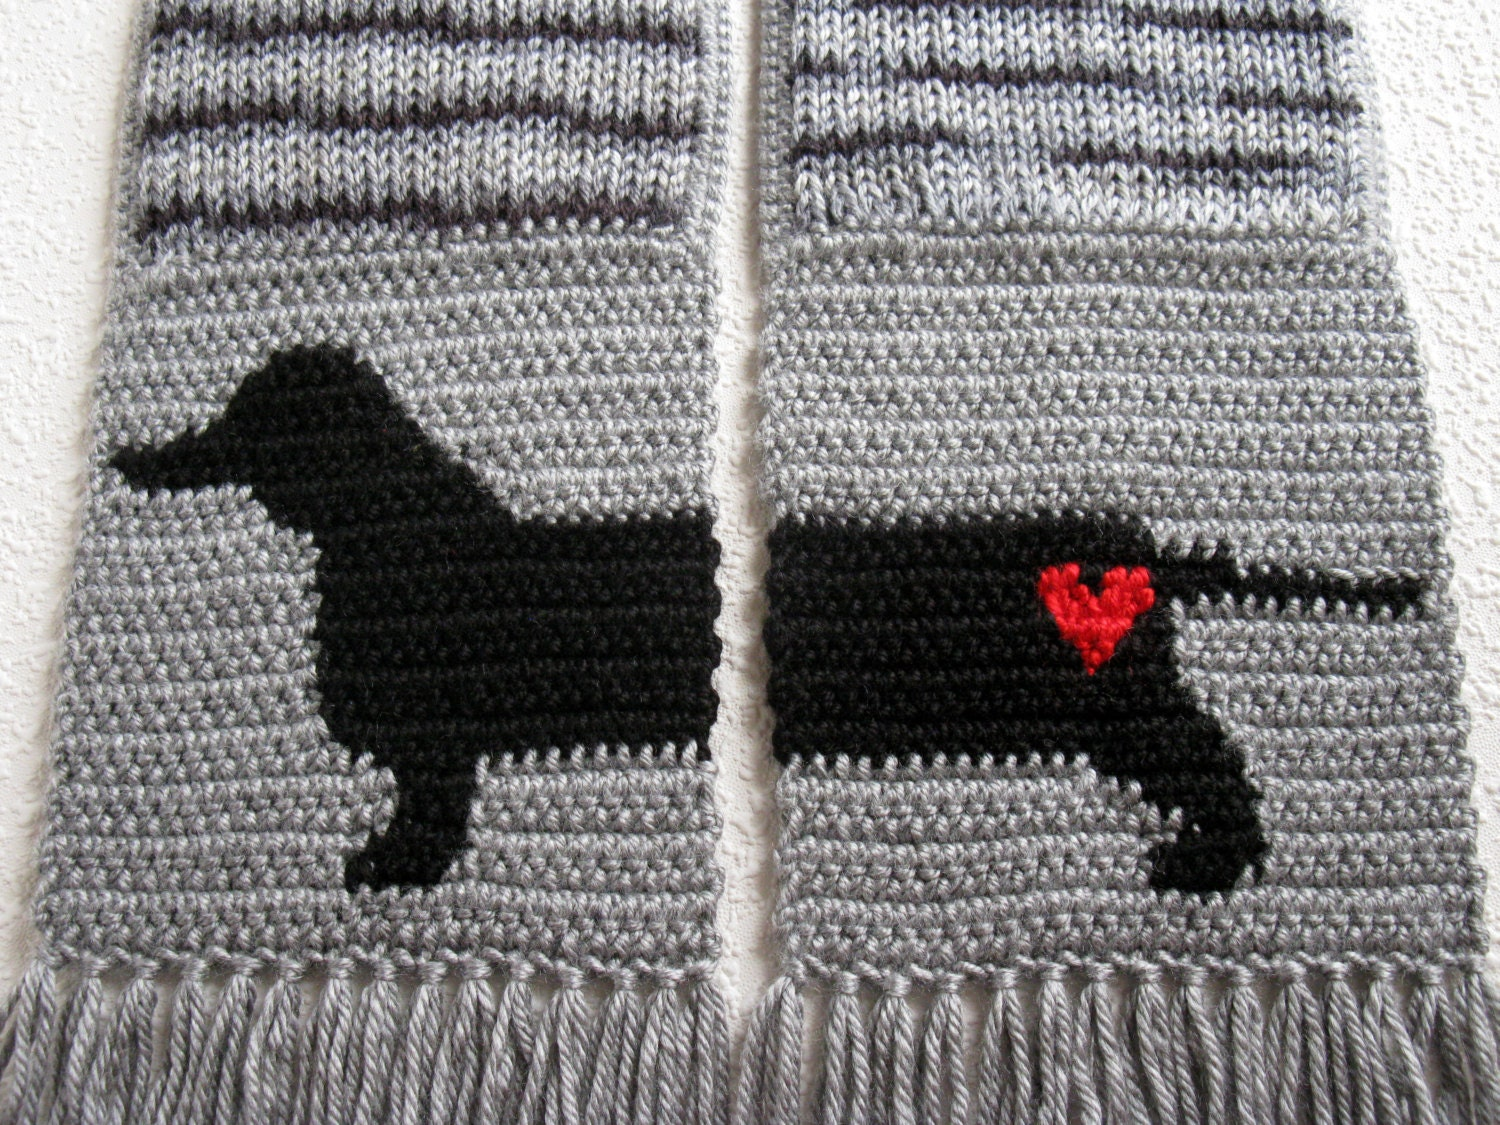 Knitted Dachshund Pattern : Knit Dachshund Scarf. Gray striped knitted scarf with a